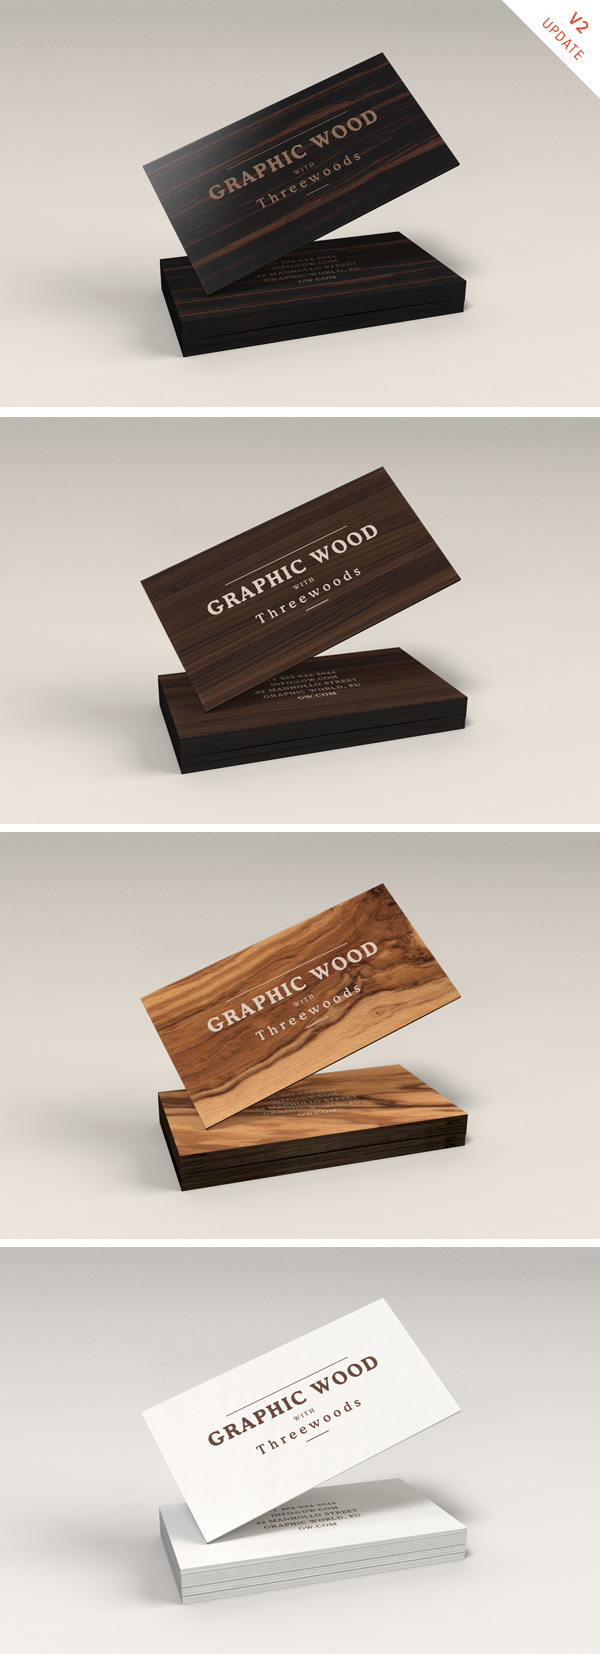 Wooden-Business-Cards-MockUp-V2-600